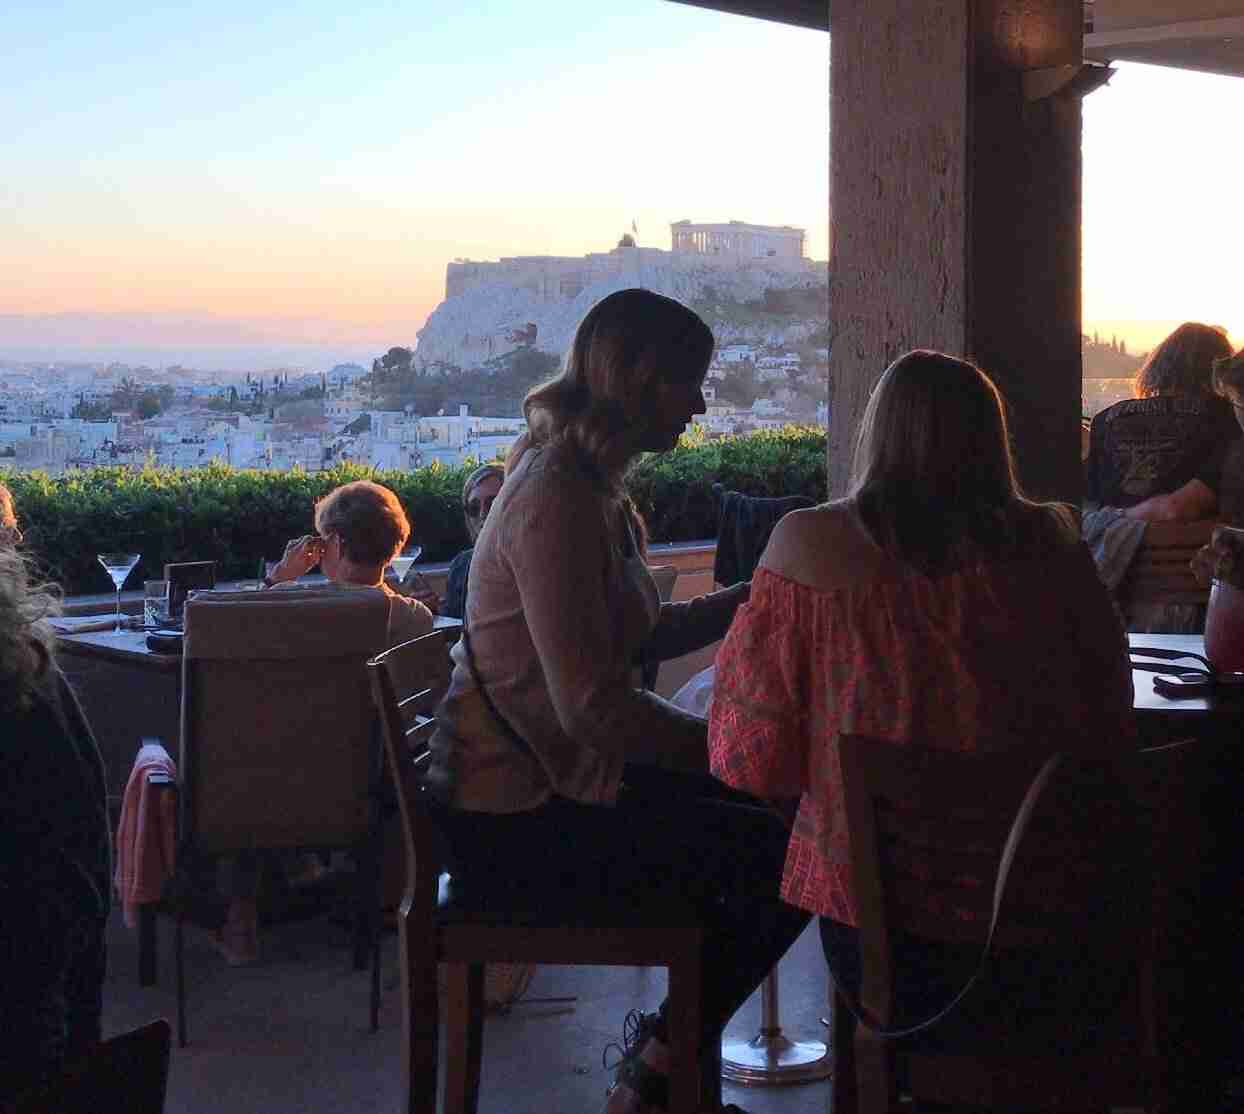 Sunset over the Acropolis in Athens from the Grand Bretagne Hotel rooftop bar